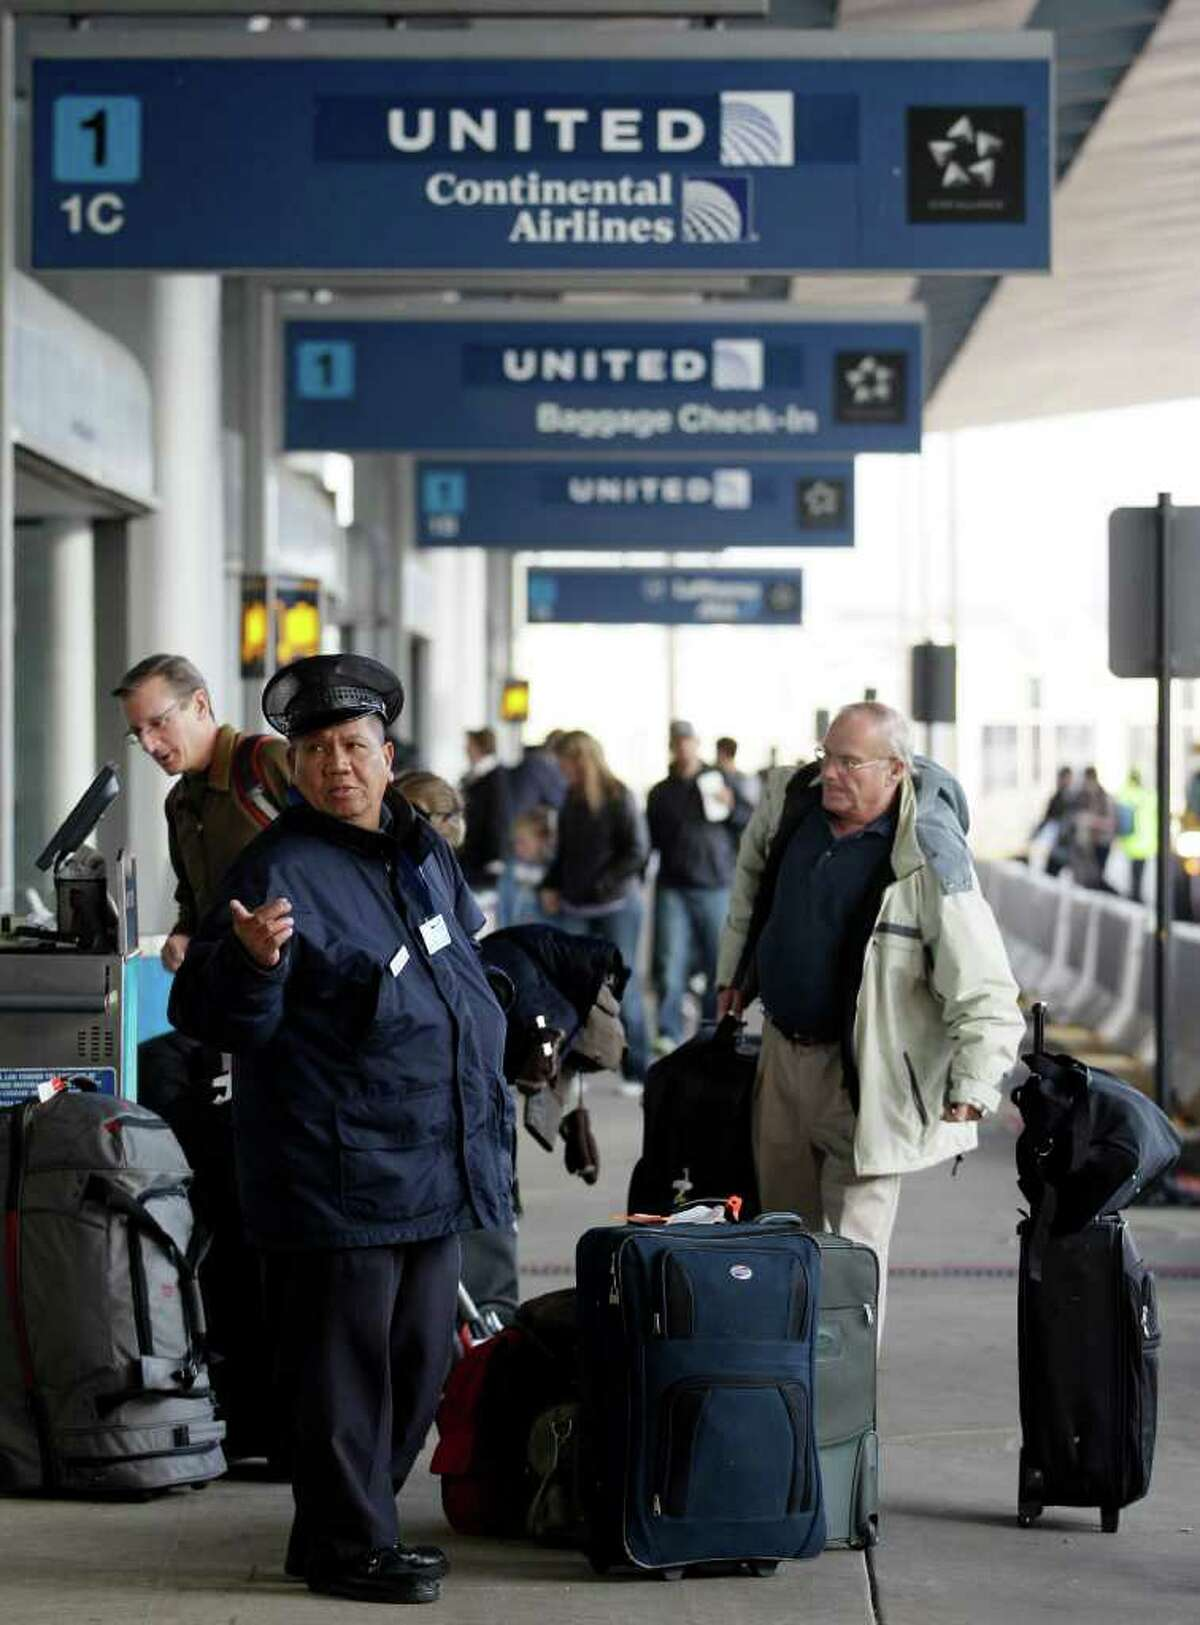 Travelers check their luggage bags with employees at United Airline before ticketing at O'Hare International Airport in Chicago on Wednesday, Nov. 23, 2011. Thursday marks the Thanksgiving holiday, one of the busiest travel days of the year.